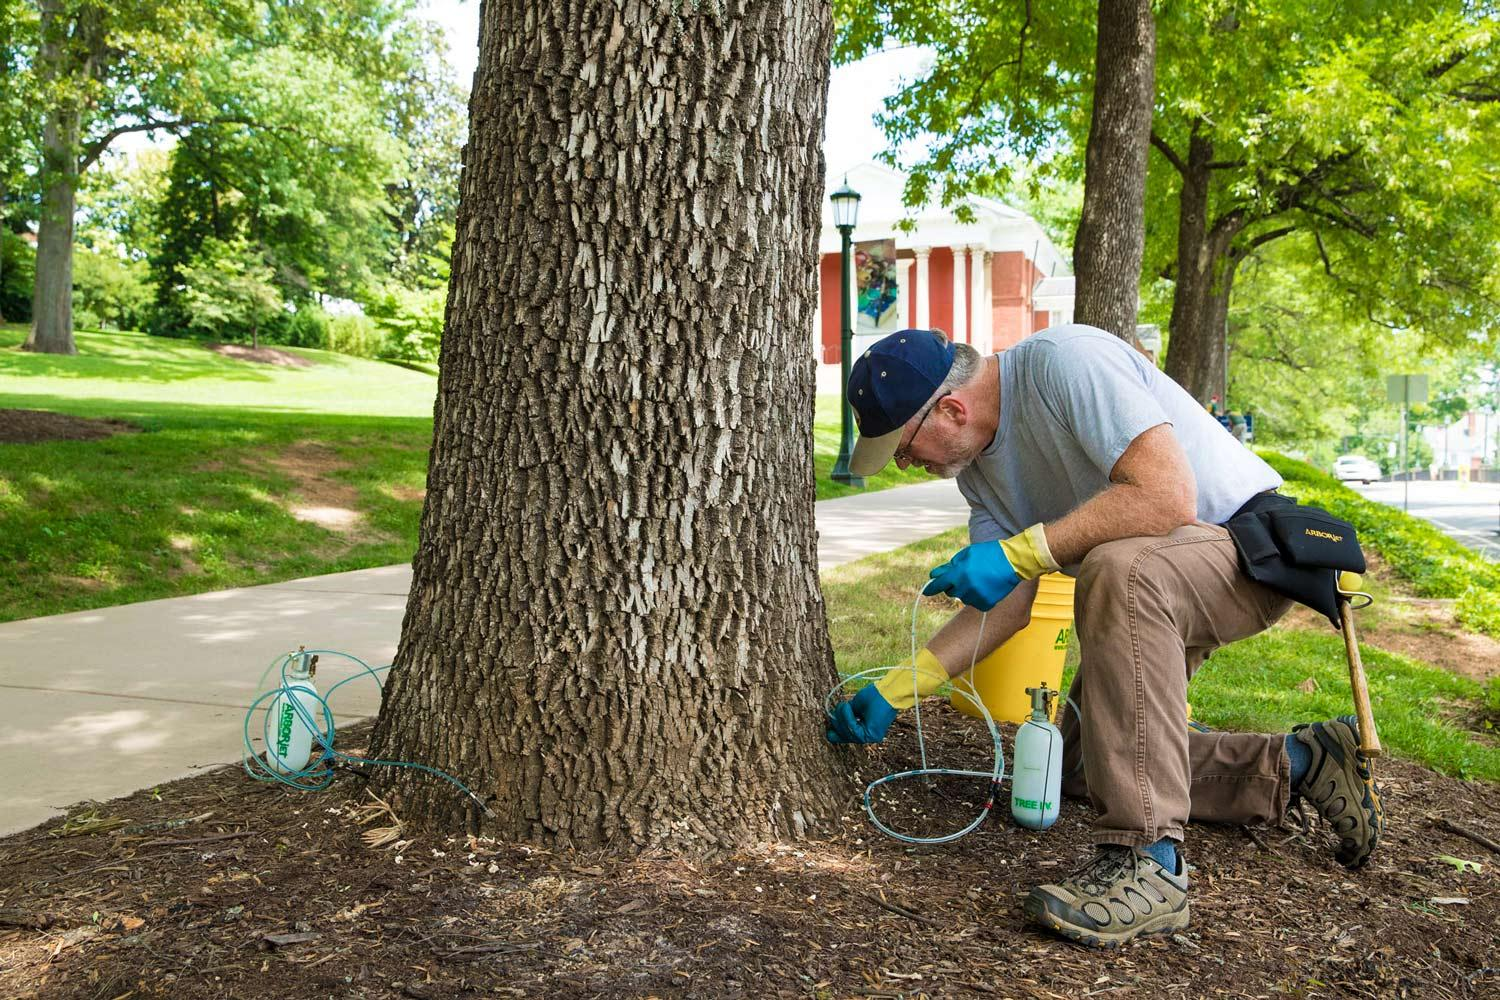 Sten Cempe, from Big O Tree and Lawn Service in Stuart's Draft, injects a chemical into the base of an ash tree on Rugby Road to protect it from the emerald ash borer. (Photo by Dan Addison, University Communications)